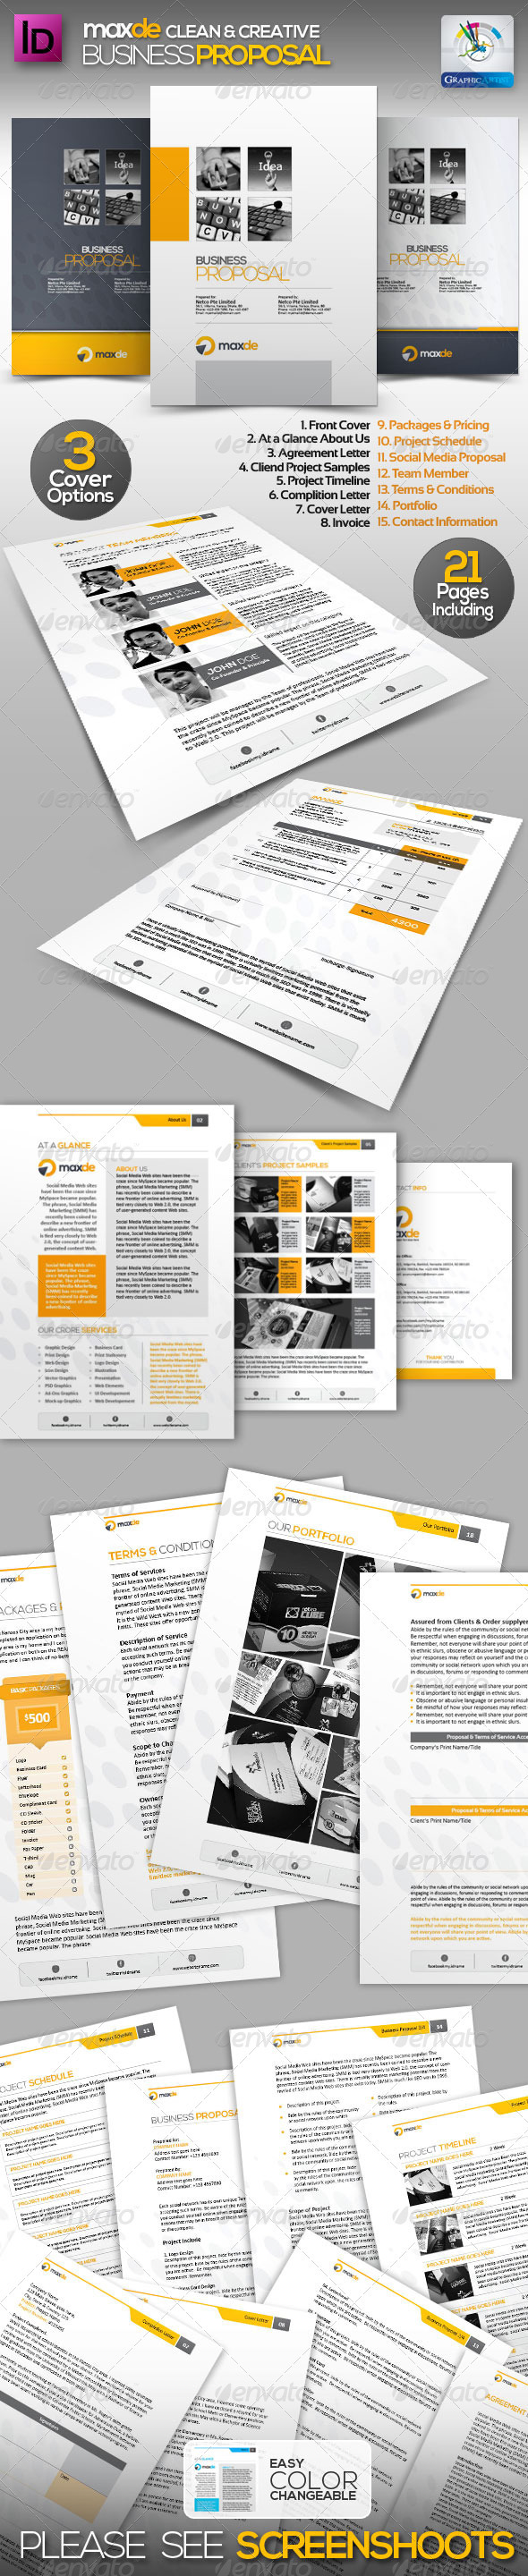 Maxde Clean Business Proposal - Proposals & Invoices Stationery